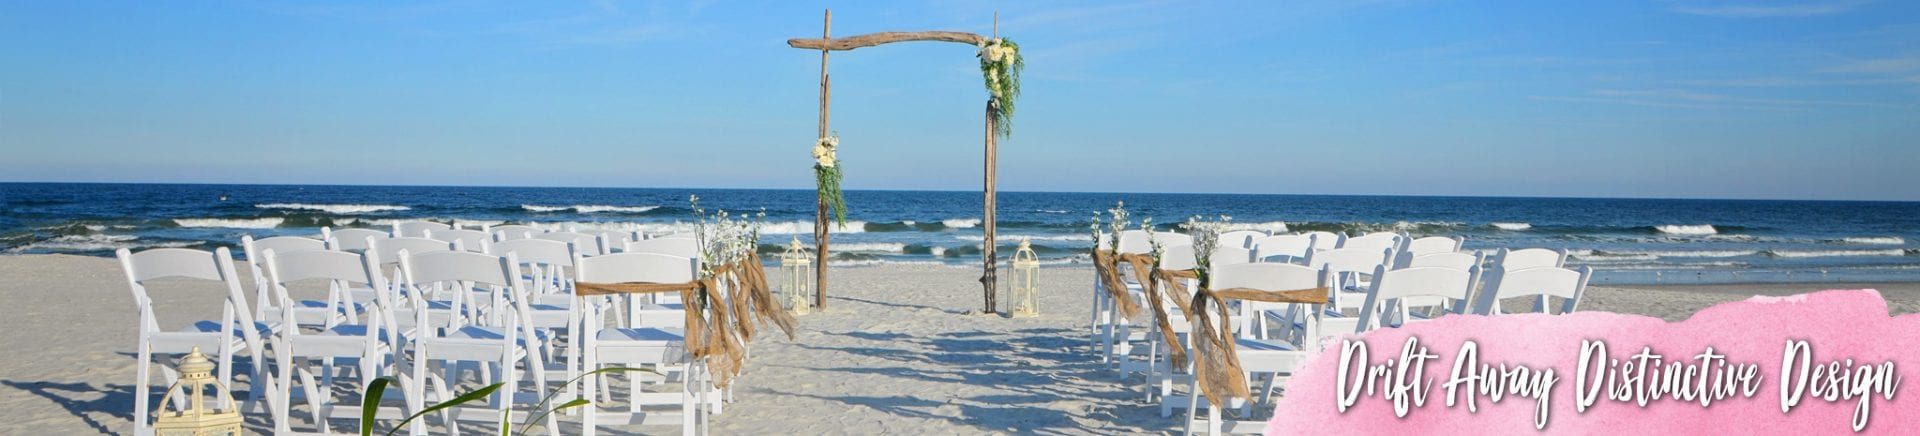 Driftwood wedding arch and white chairs with burlap sashes on the beach